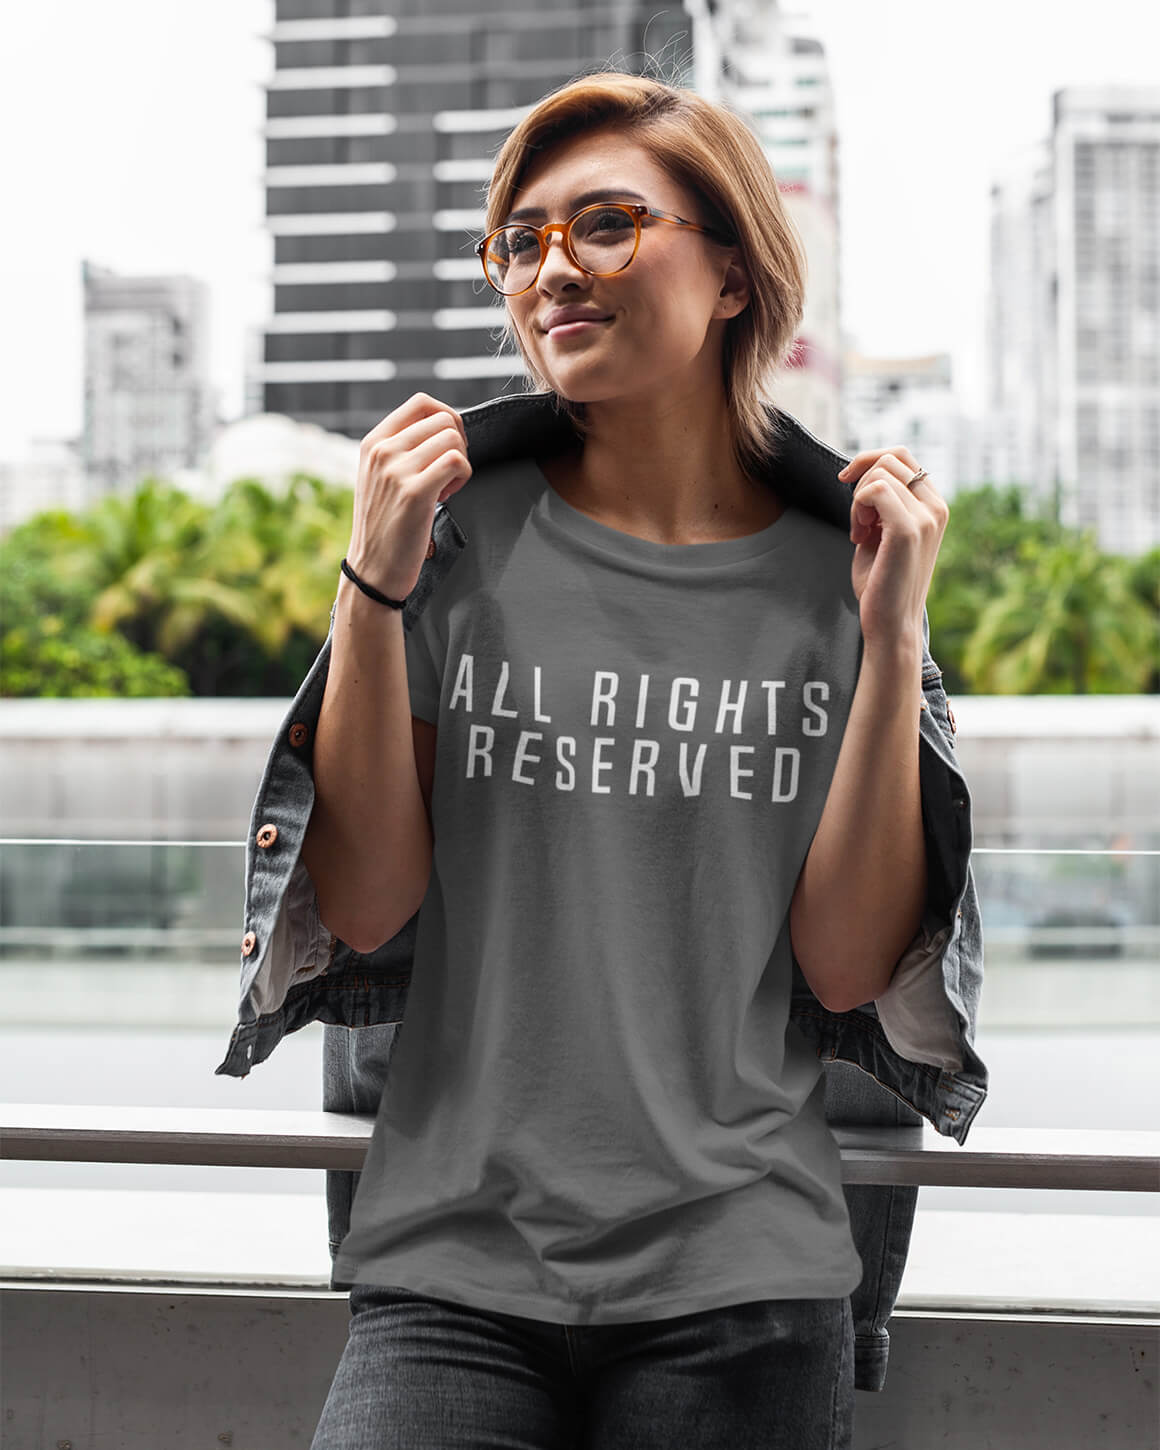 Woman wearing gray all rights reserved pro choice t shirt